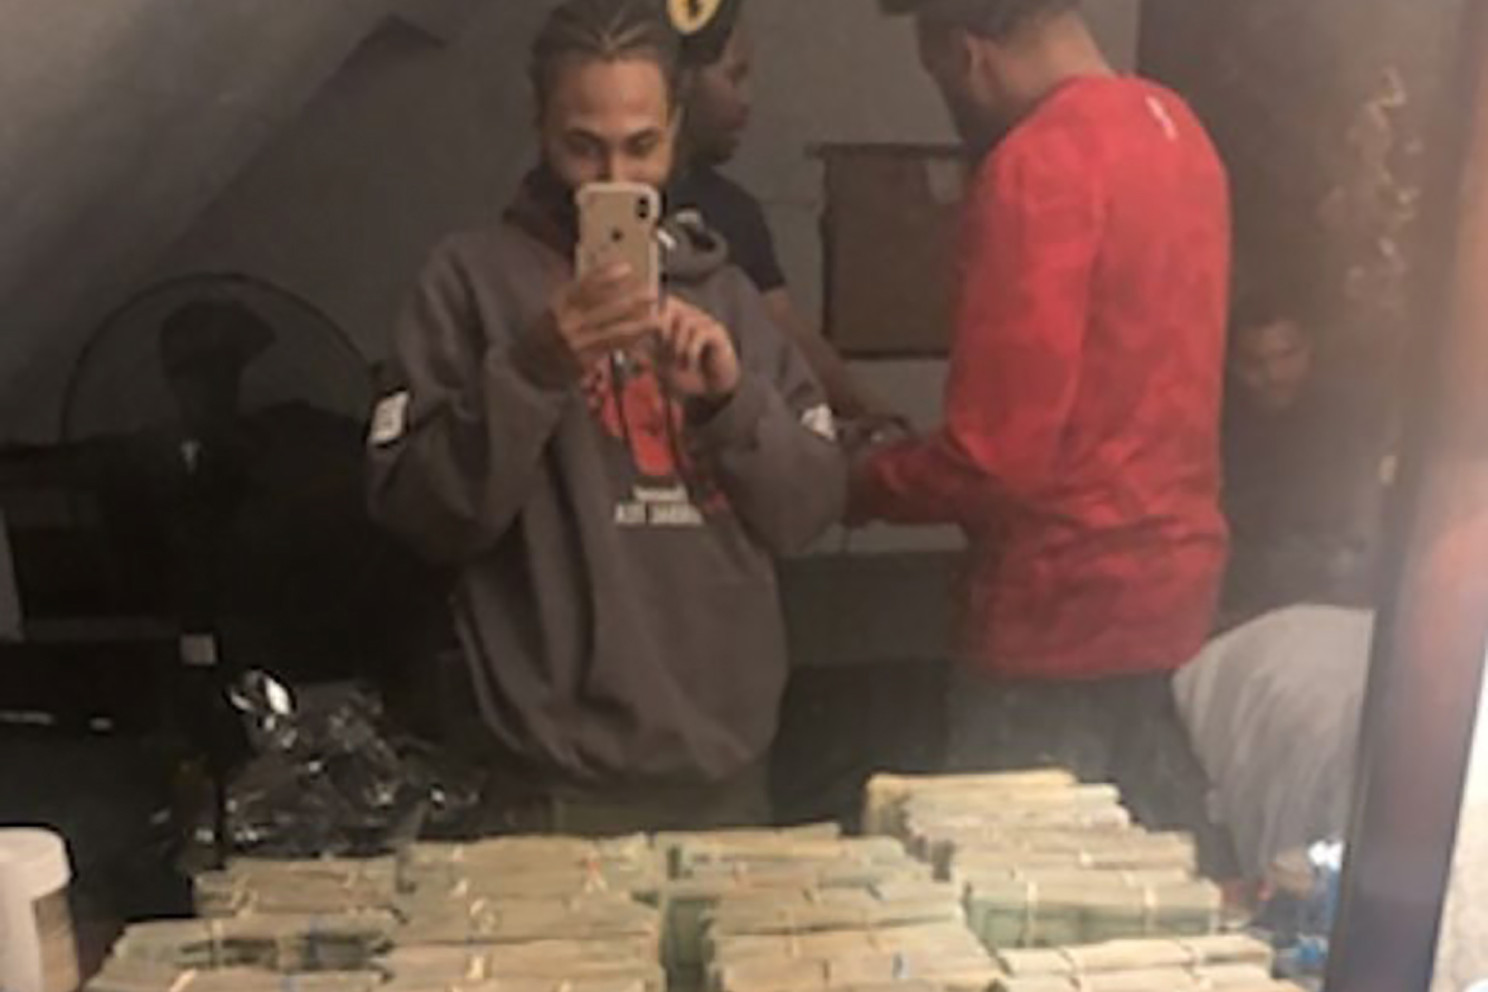 Robbery crew posing with stolen cash